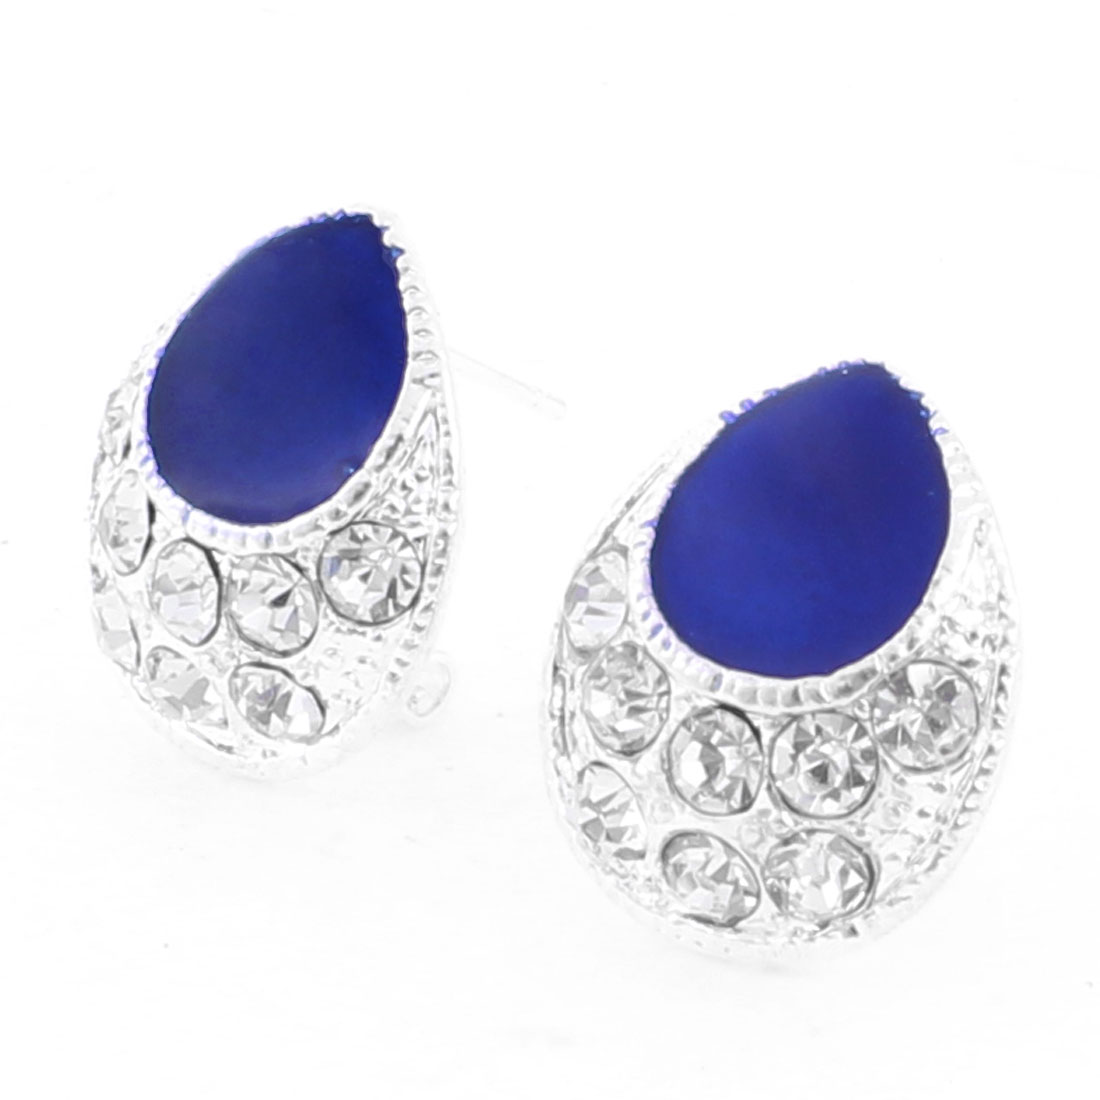 Lady Royal Blue Teardrop Beads Rhinestones Decor French Clip Earrings Stud Pair